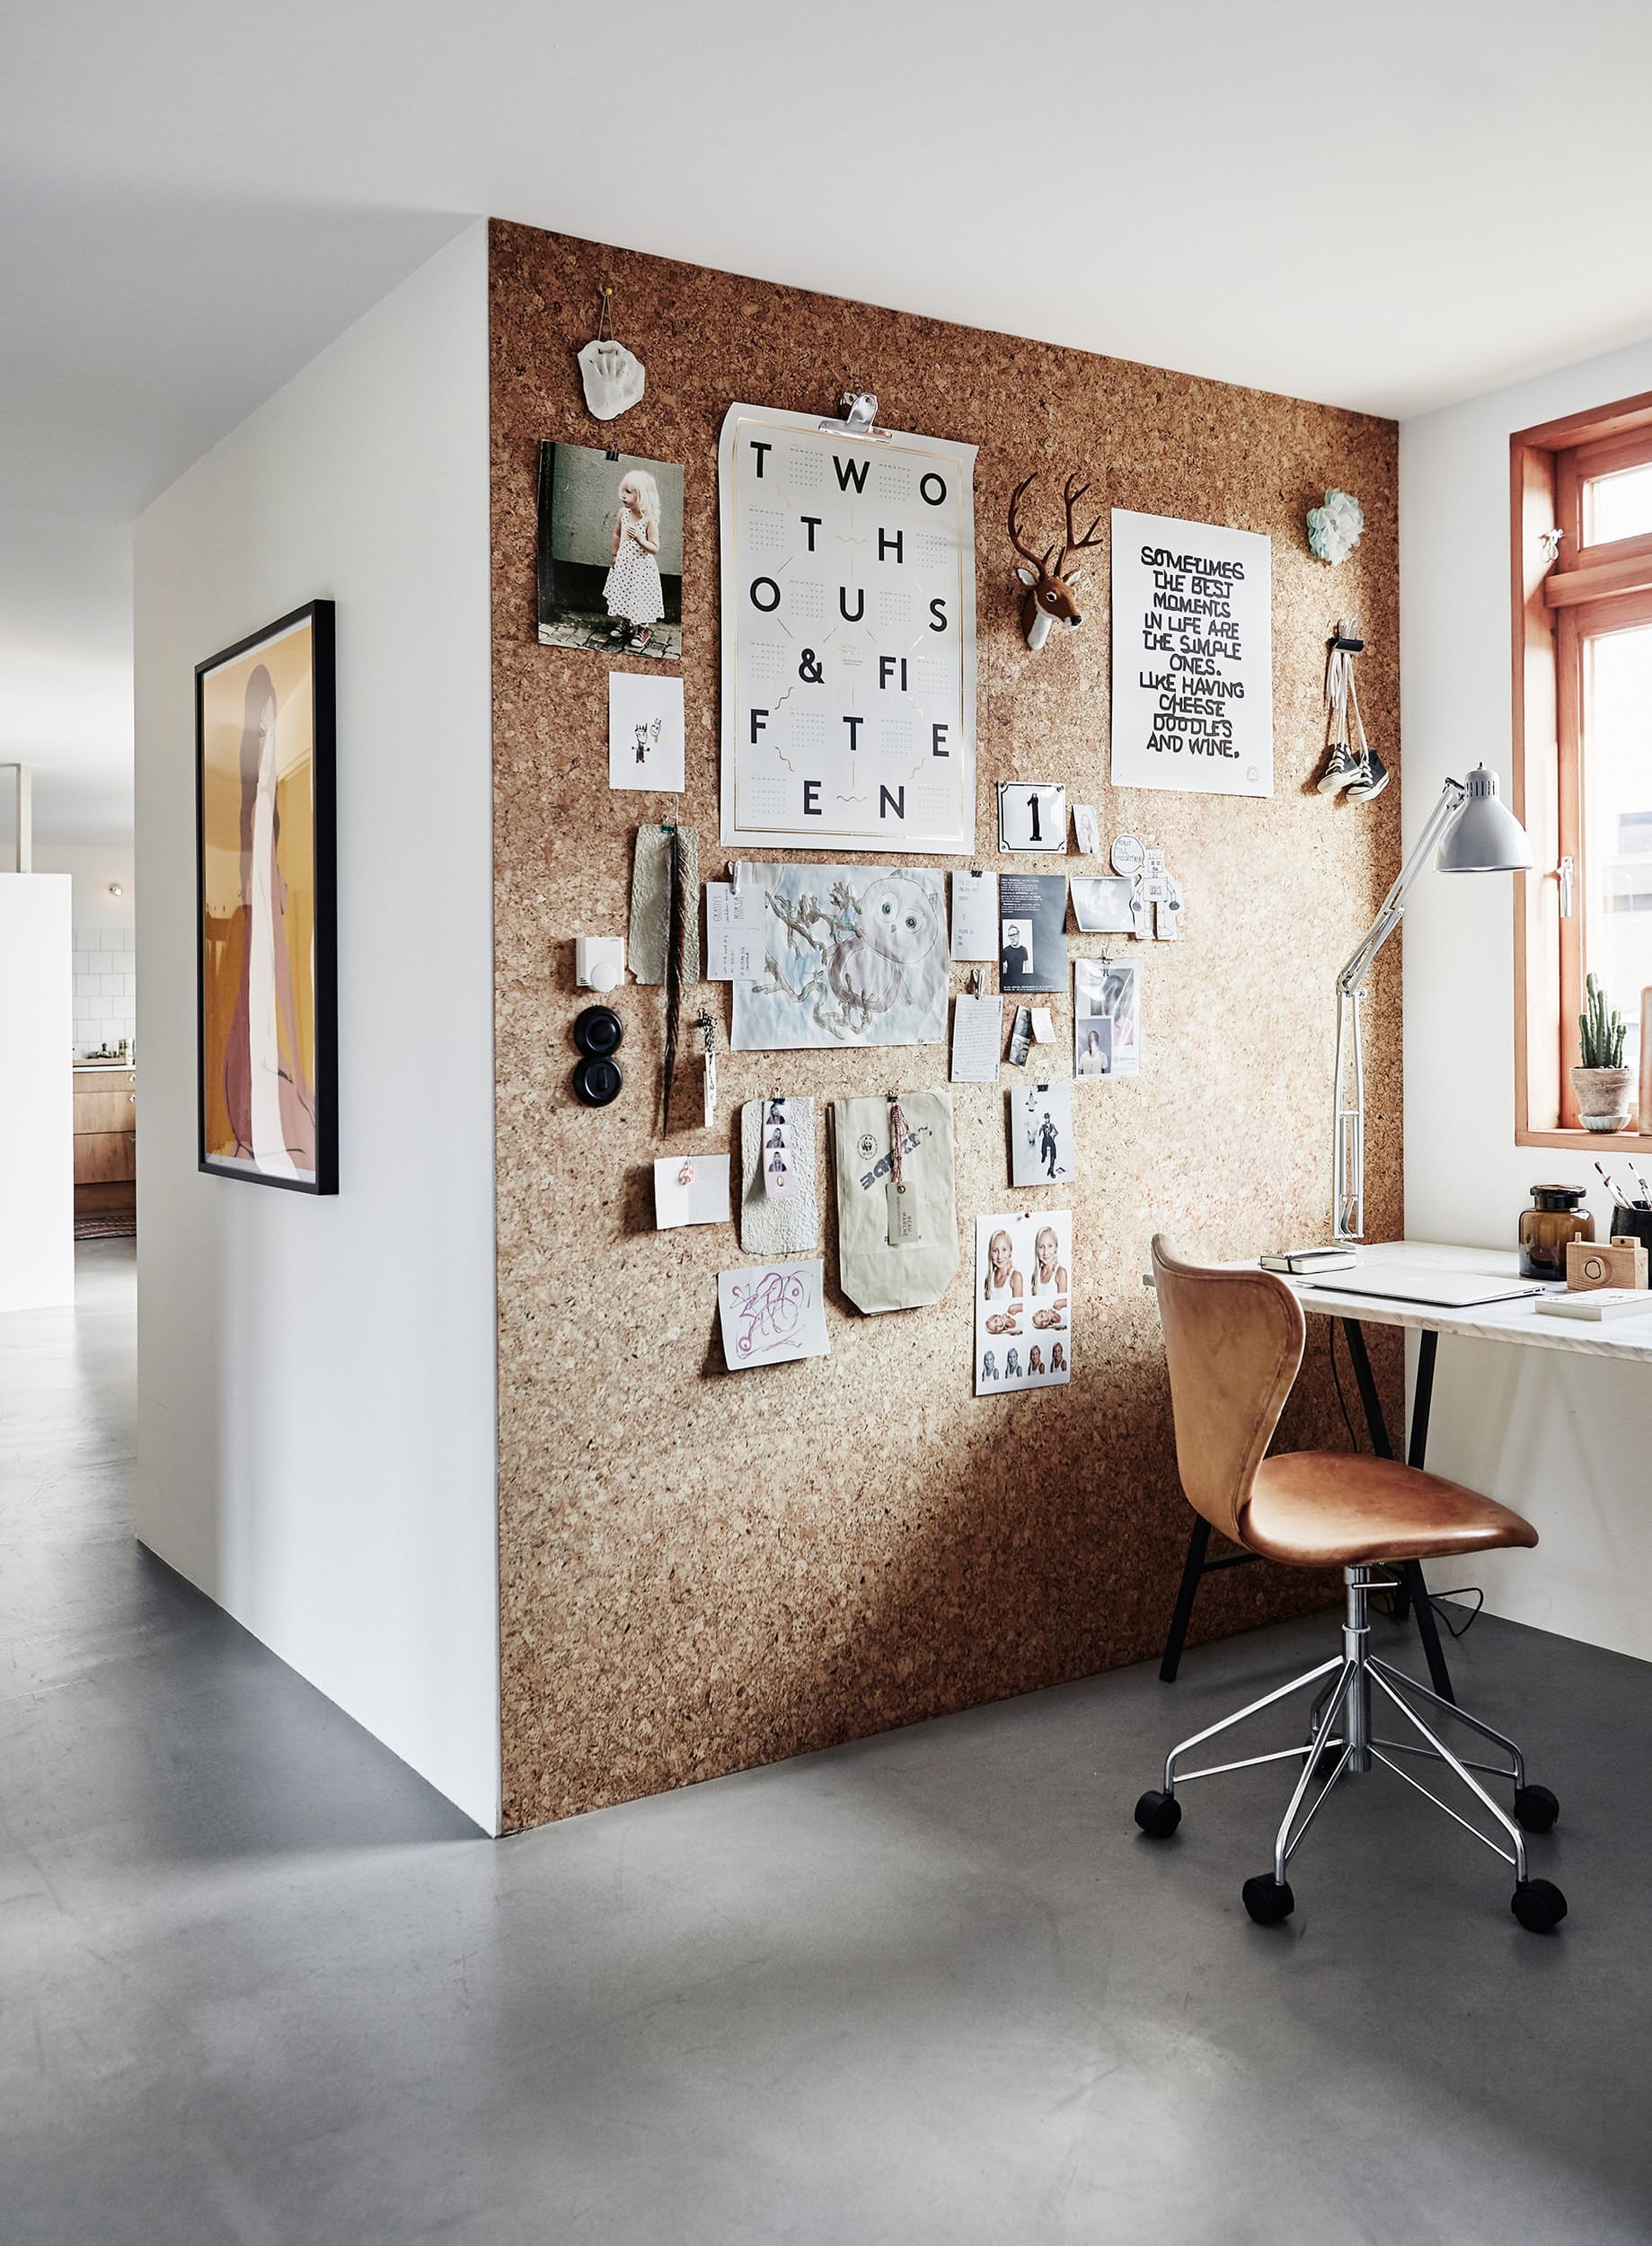 10 Home Office Design Ideas You Should Get Inspired By home office design 10 Home Office Design Ideas You Should Get Inspired By 10 Home Office Design Ideas You Should Get Inspired By 10